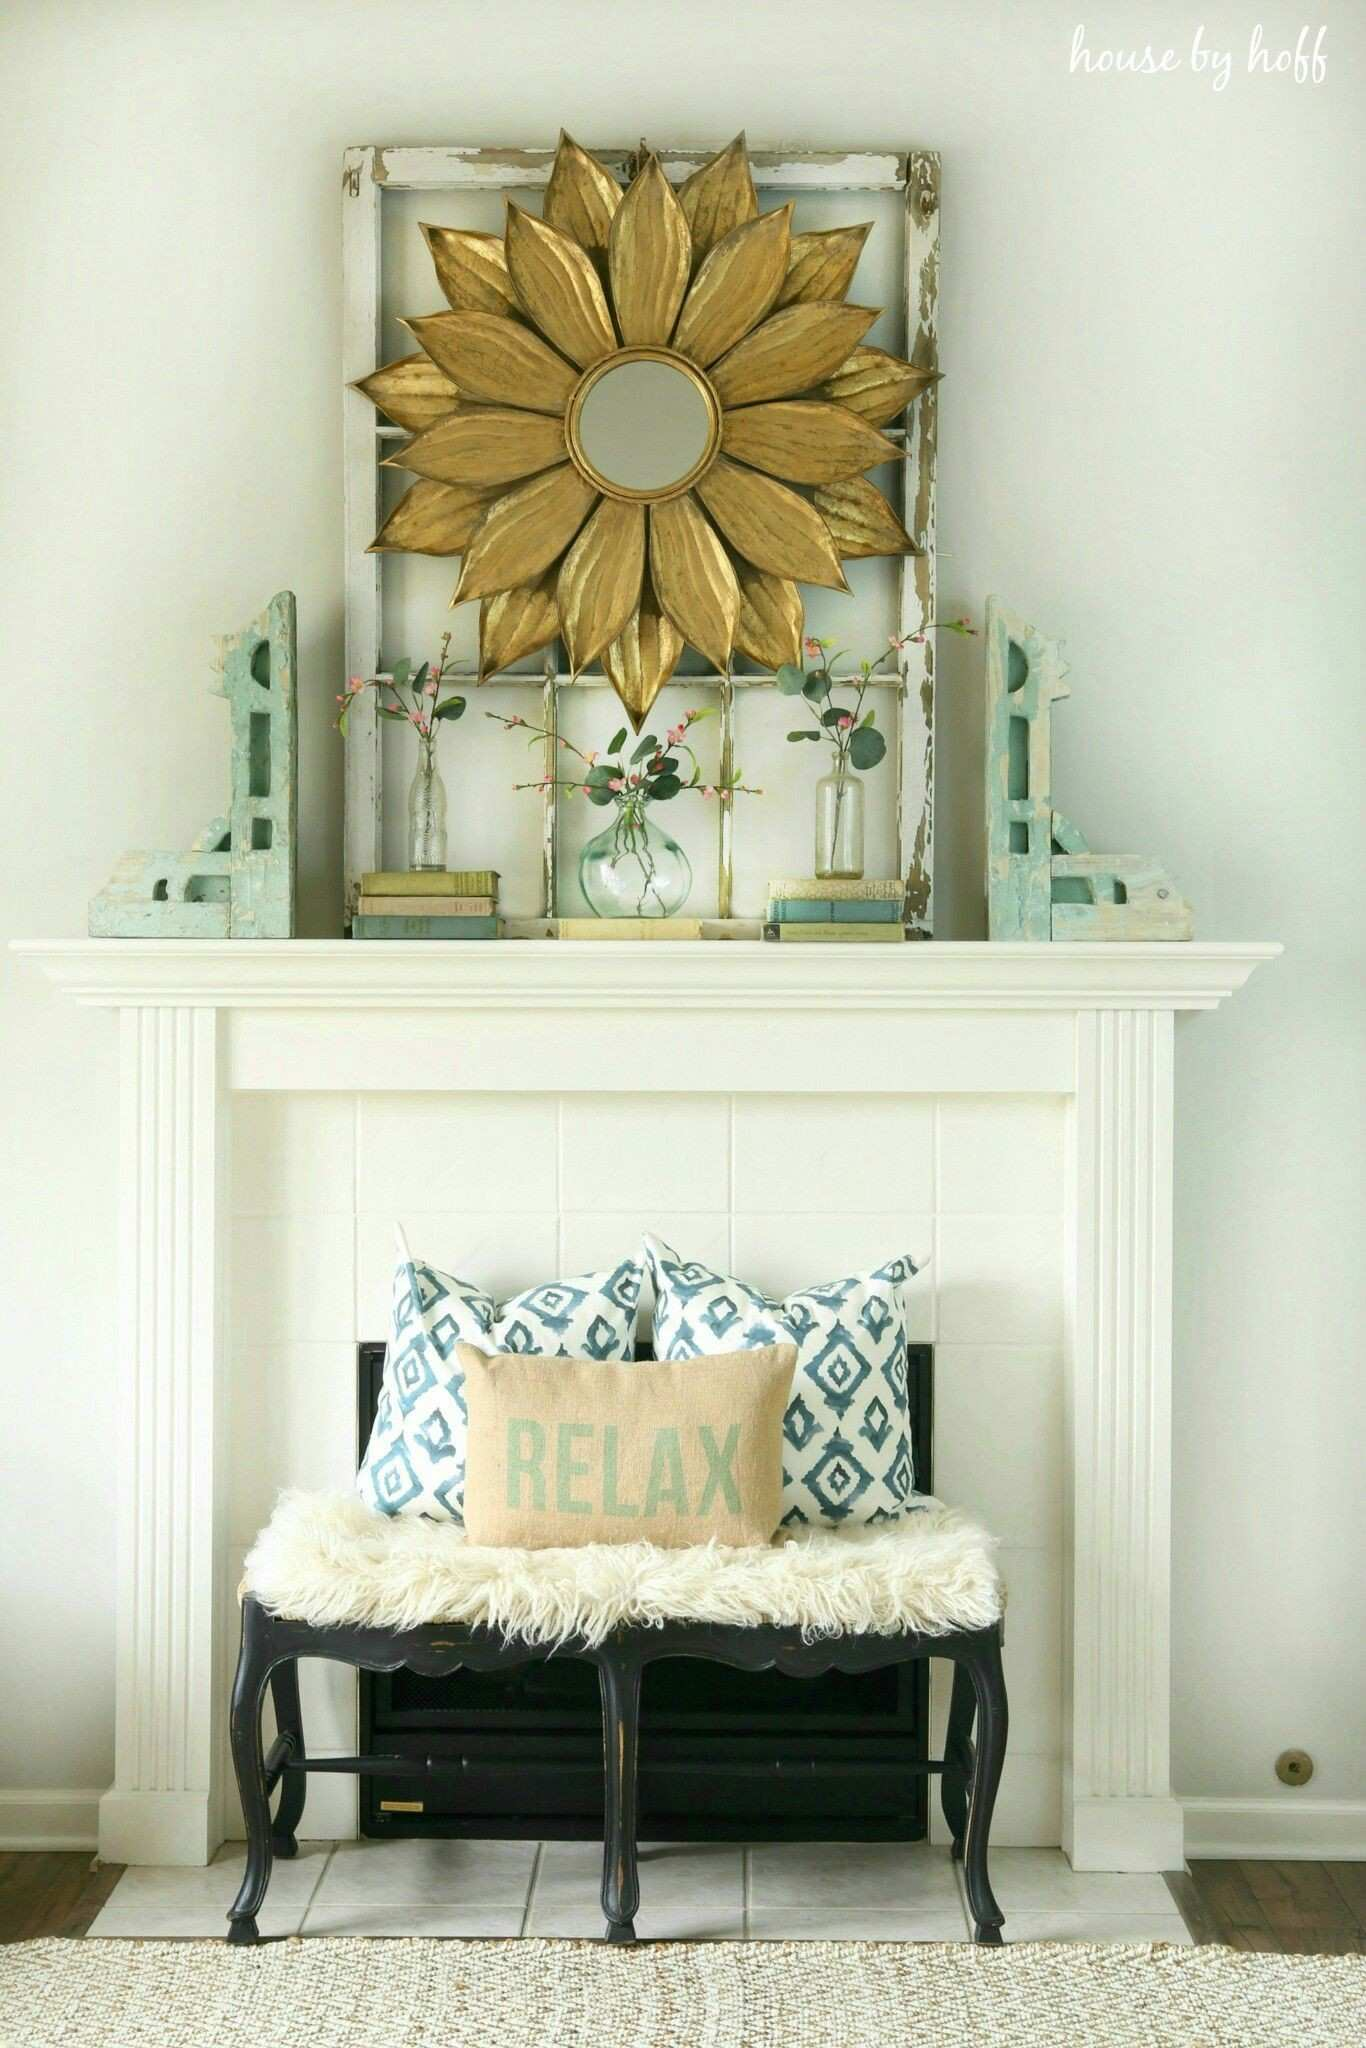 Pin by Jeanne Dugan on decorating Pinterest